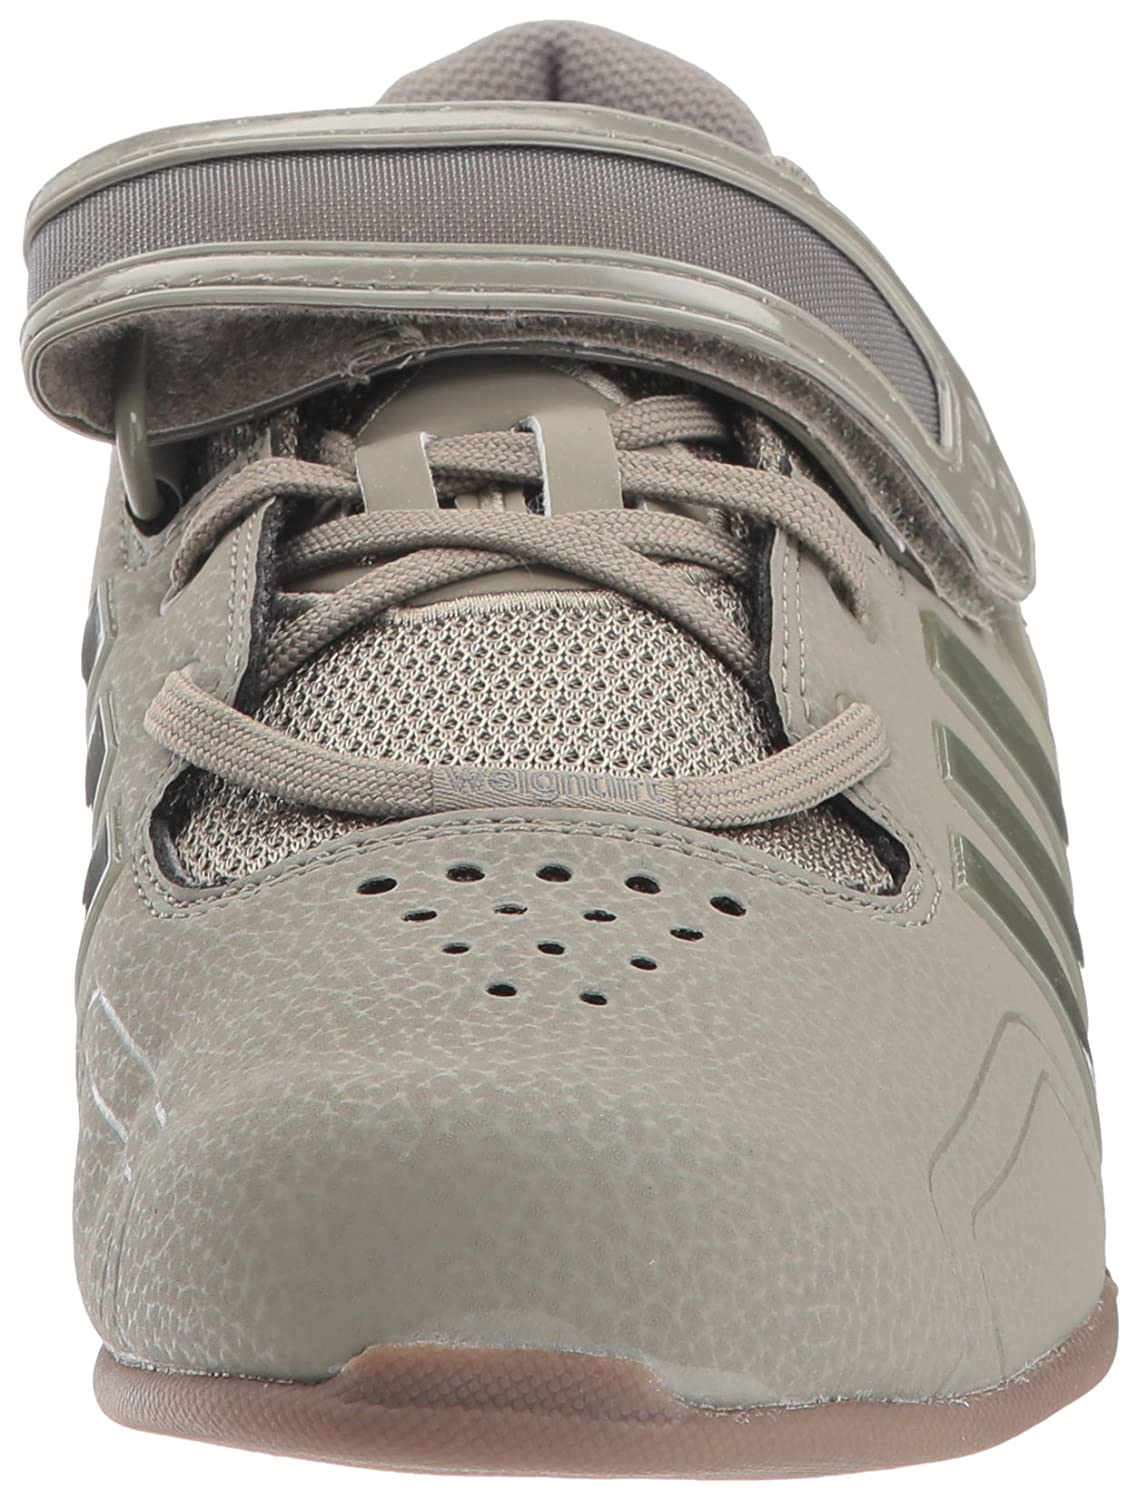 best sneakers 9e551 212c9 adidas Adipower Weightlift Cross Trainer Trace Cargo Gum, 3.5 M US   Amazon.fr  Chaussures et Sacs